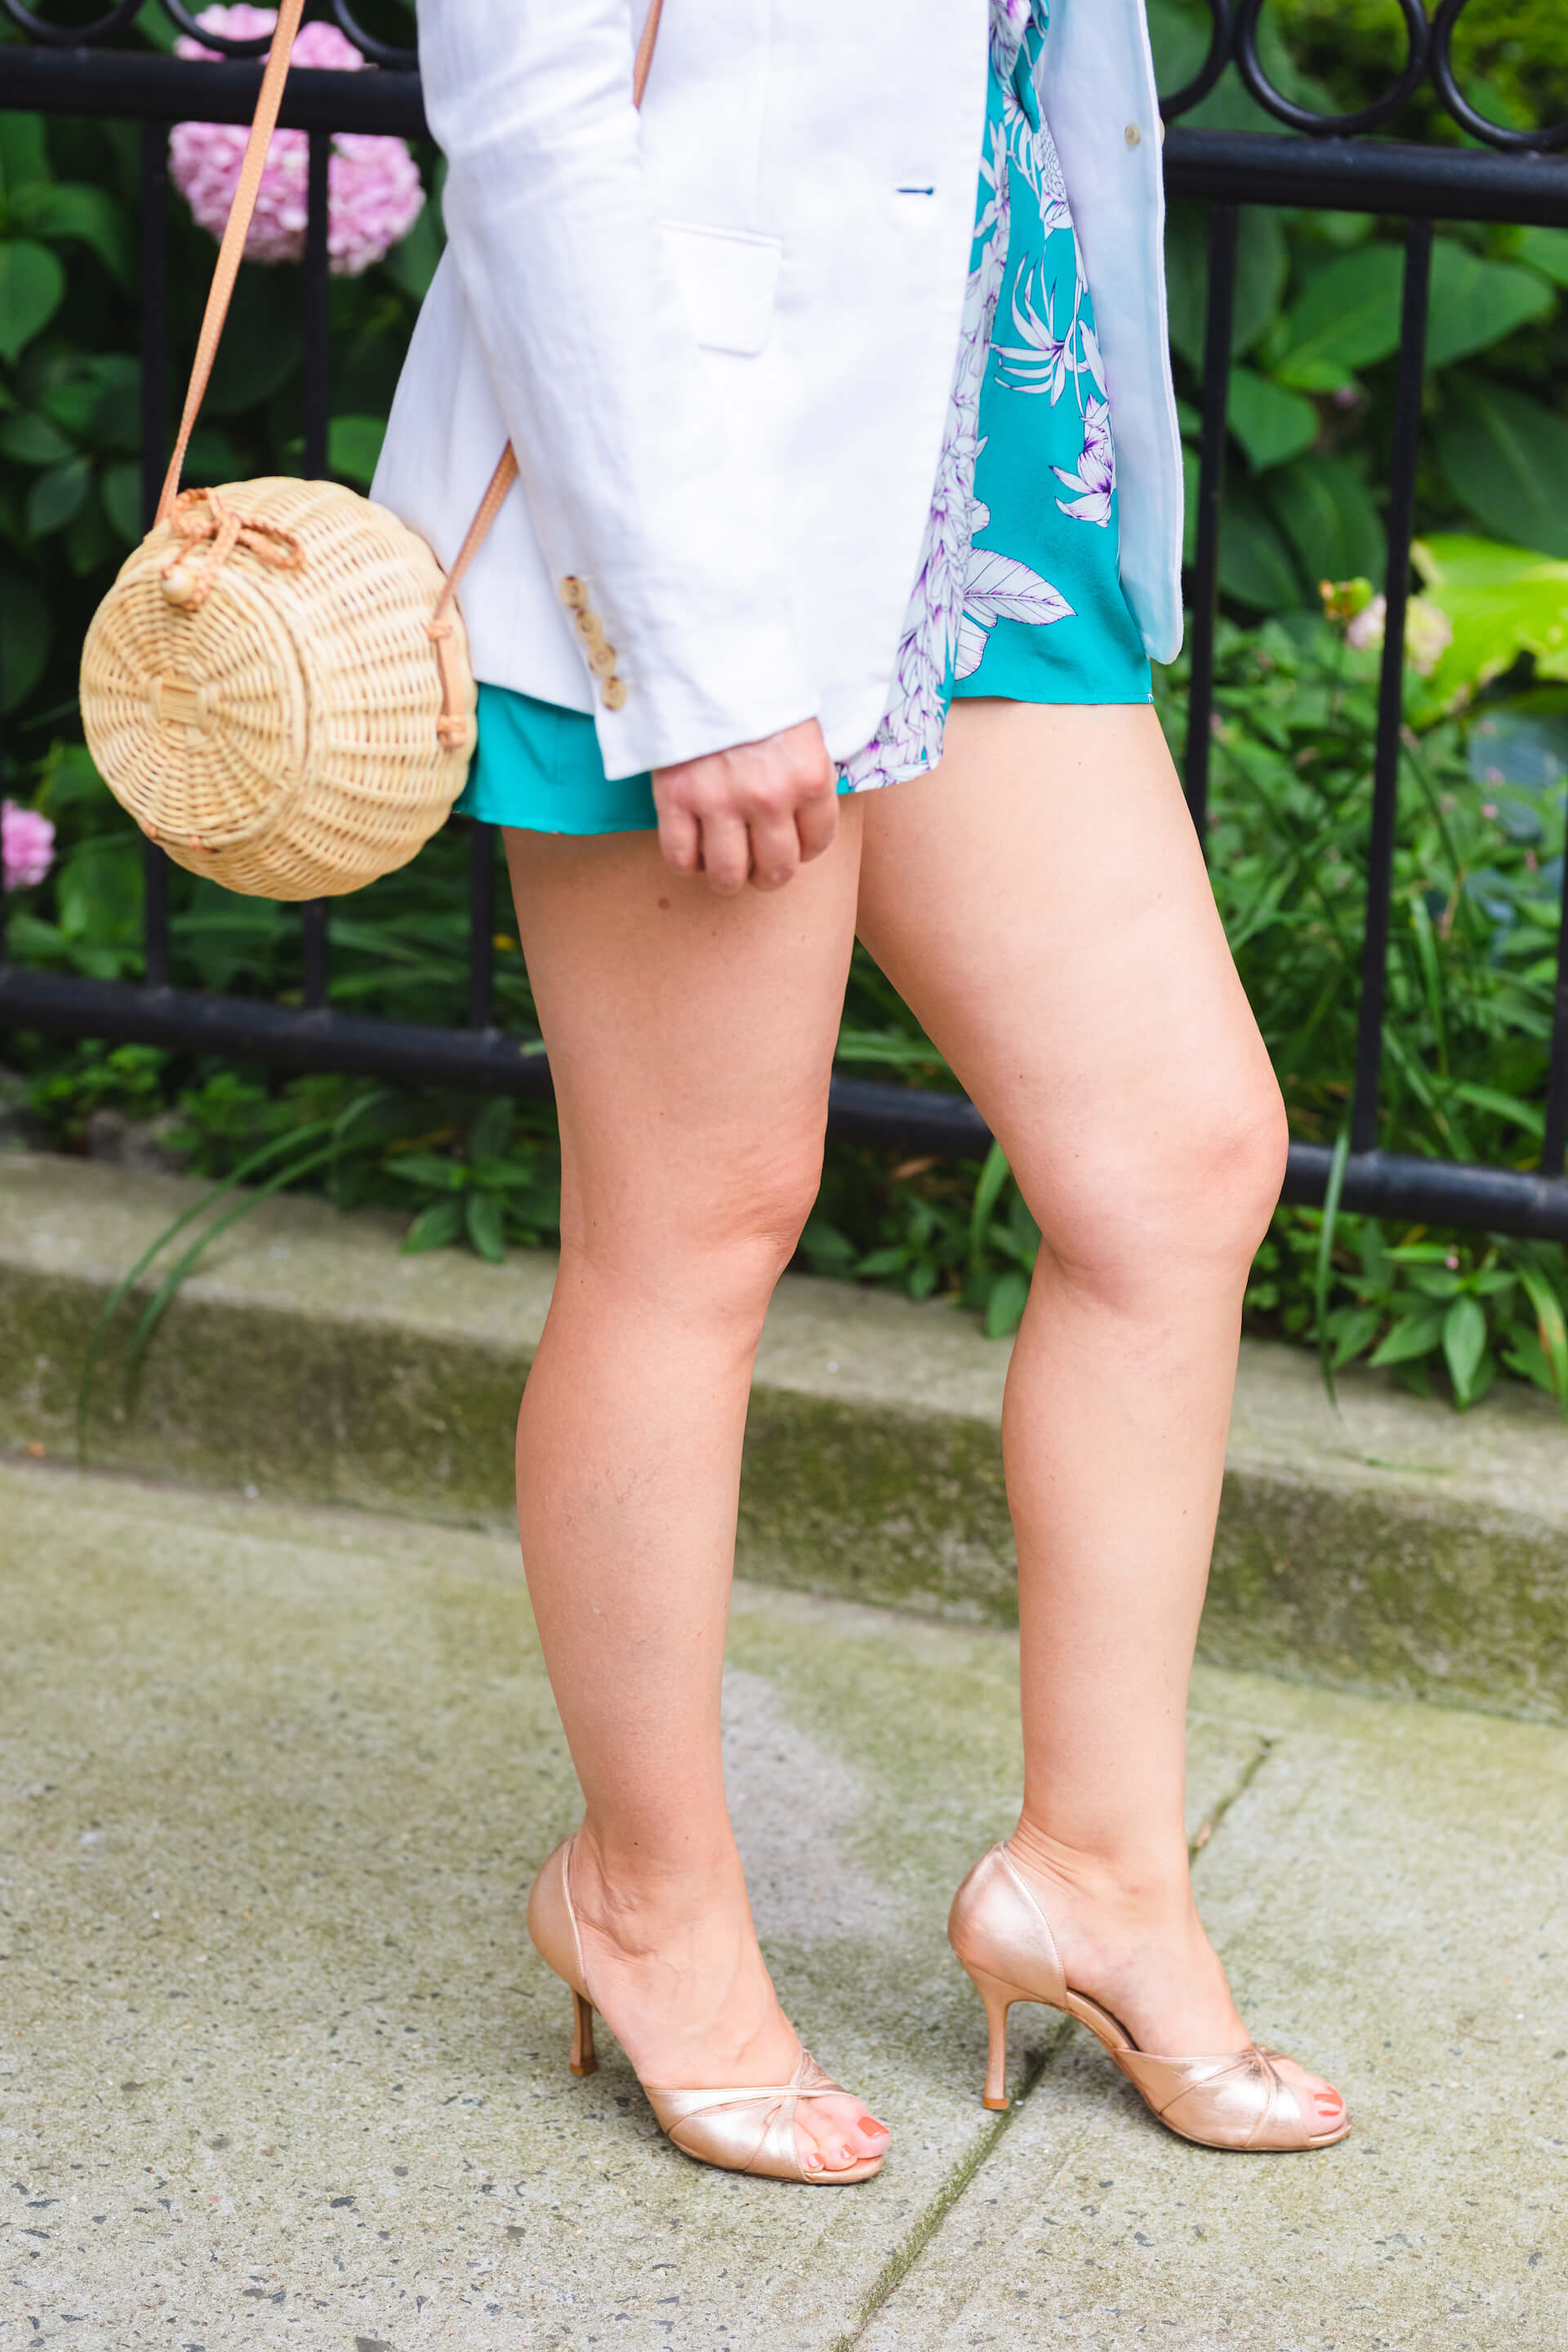 YUMI KIM ROMPER SUMMER LOOK BY MODNITSA STYLING